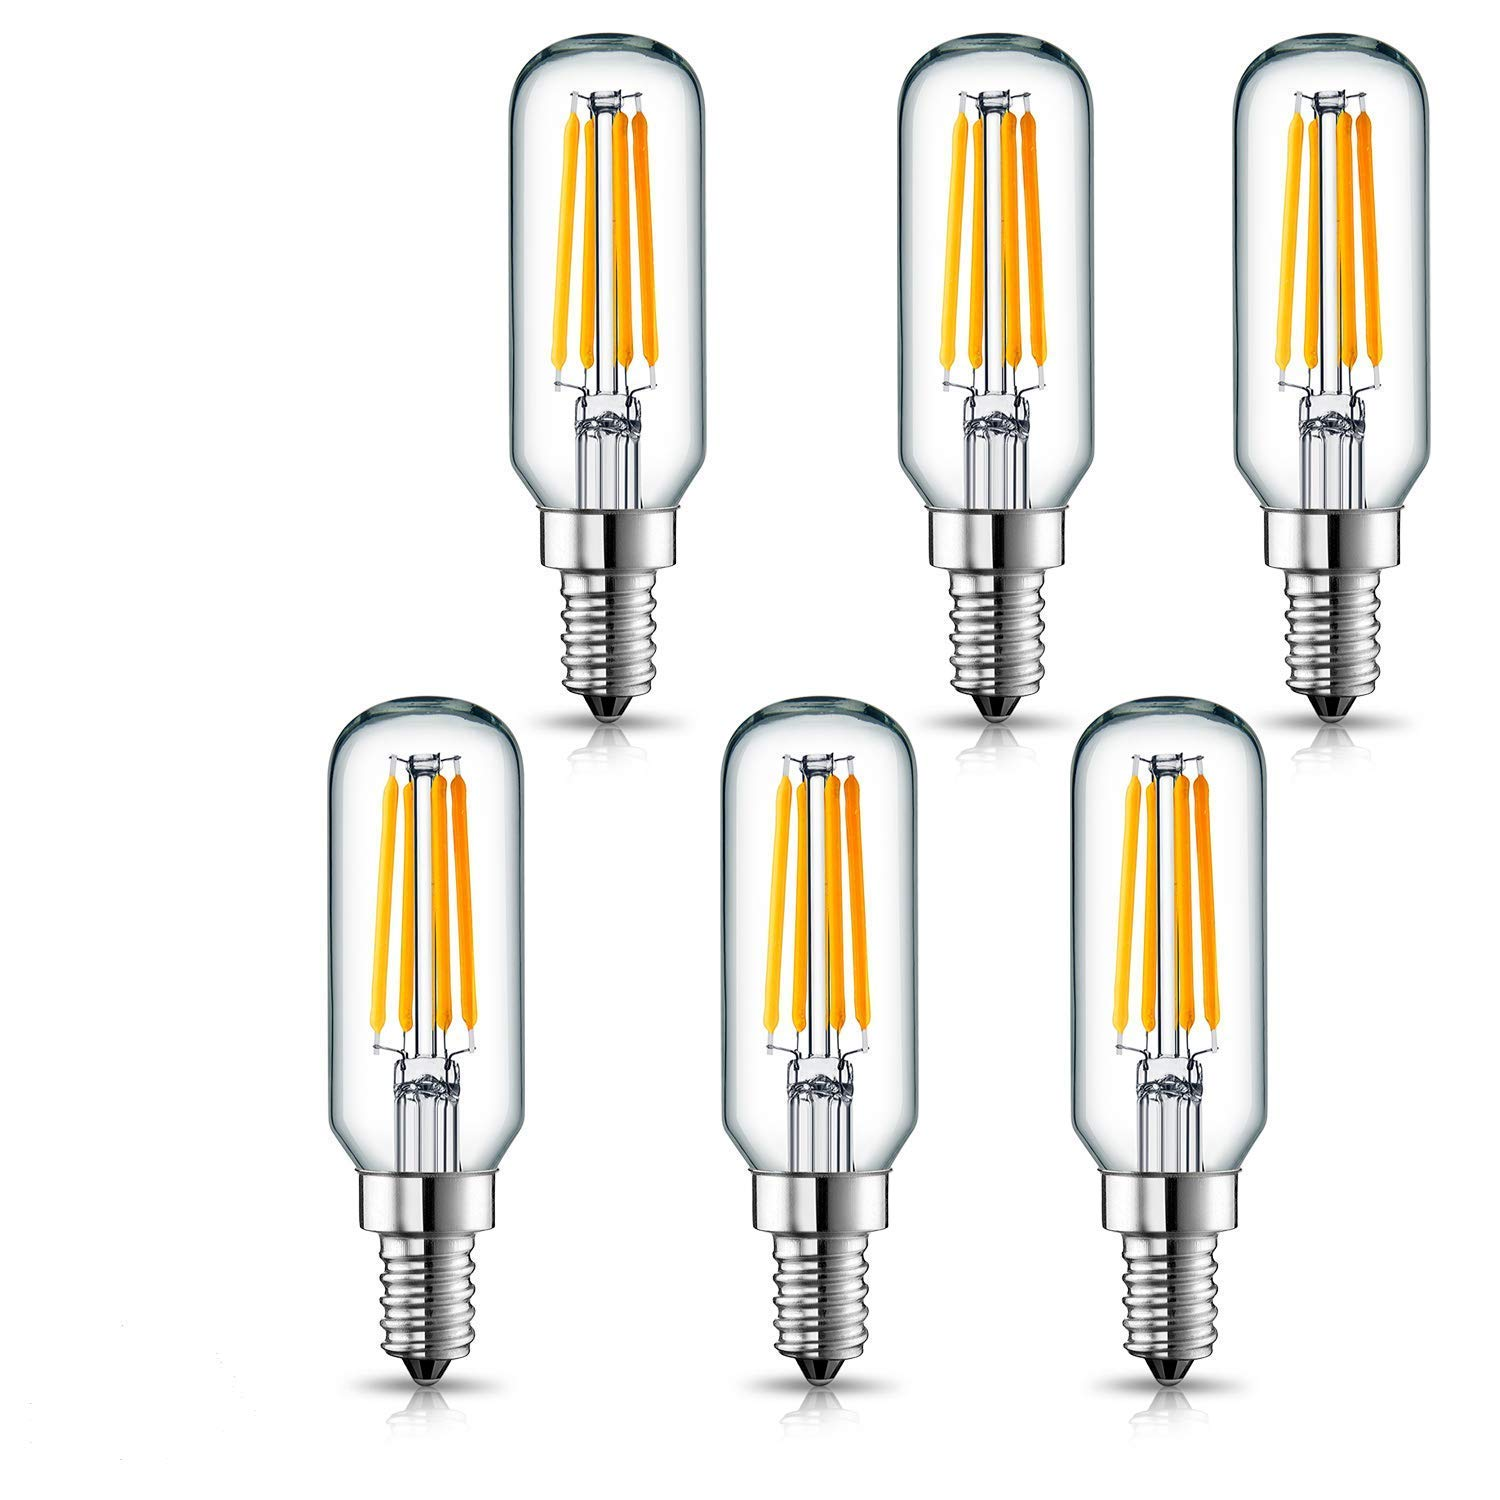 E12 Base 4W Warm White 3000K 40W-60W Incandescent Replacement 12PACK-T25-3000K Rekabel Dimmable Tubular LED Bulb TP-T25-4W-3000K-12